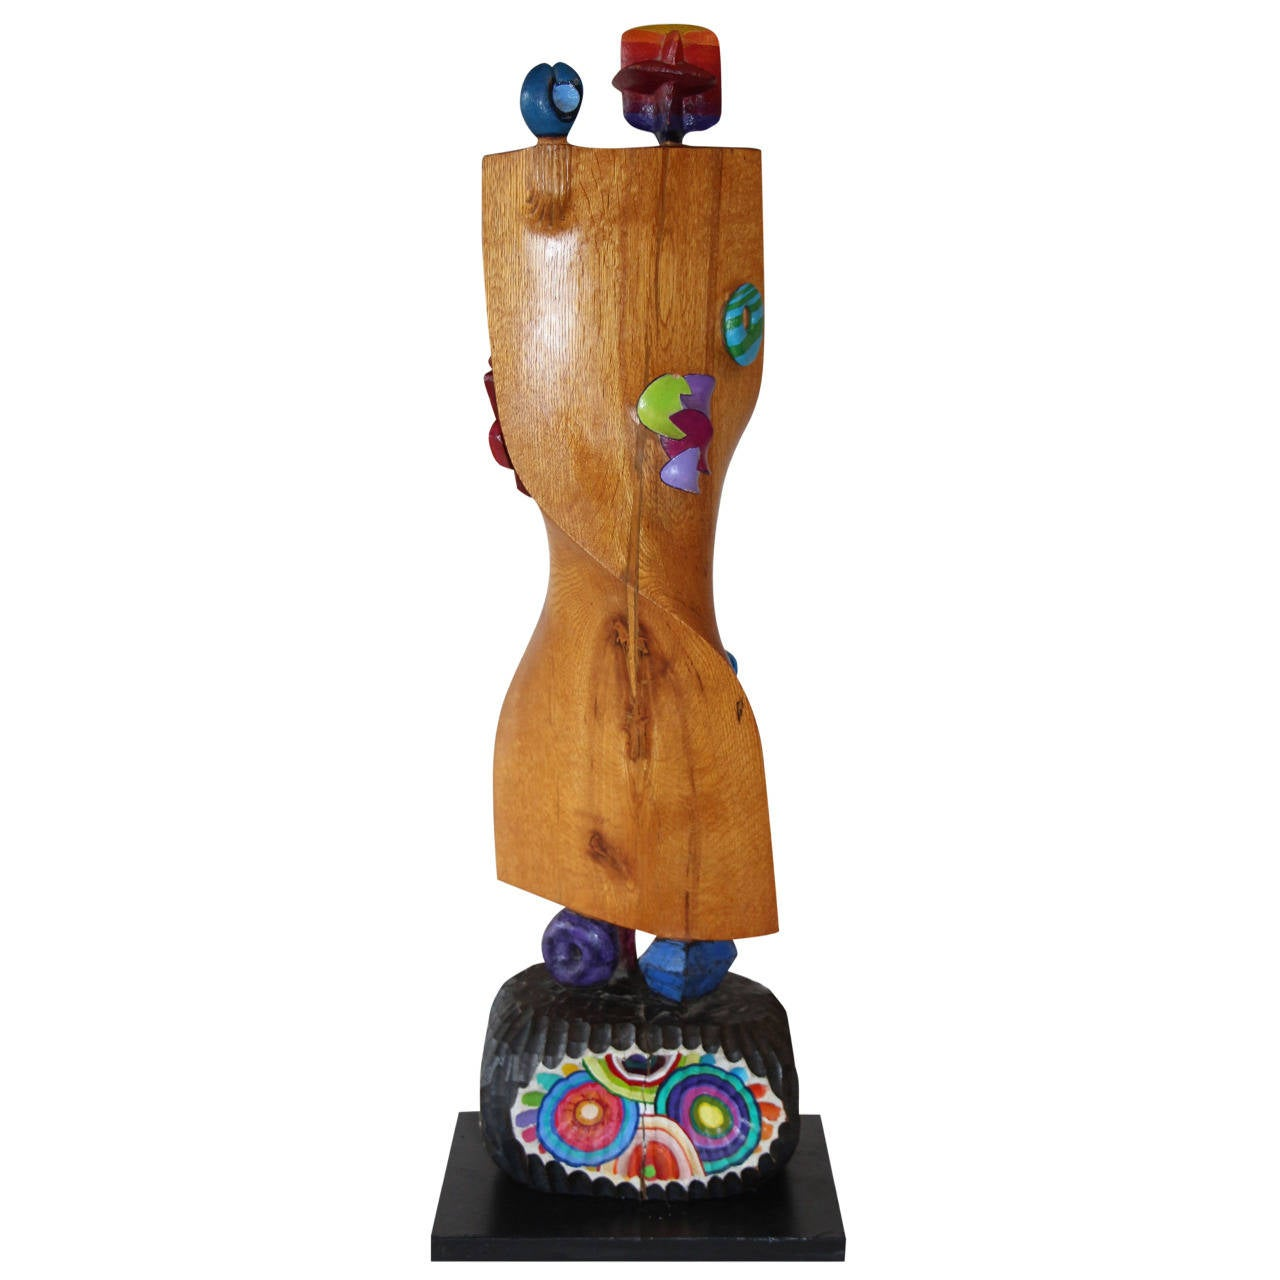 Whimsical Wood Sculpture by Noted NJ Artist Fred Schumm For Sale